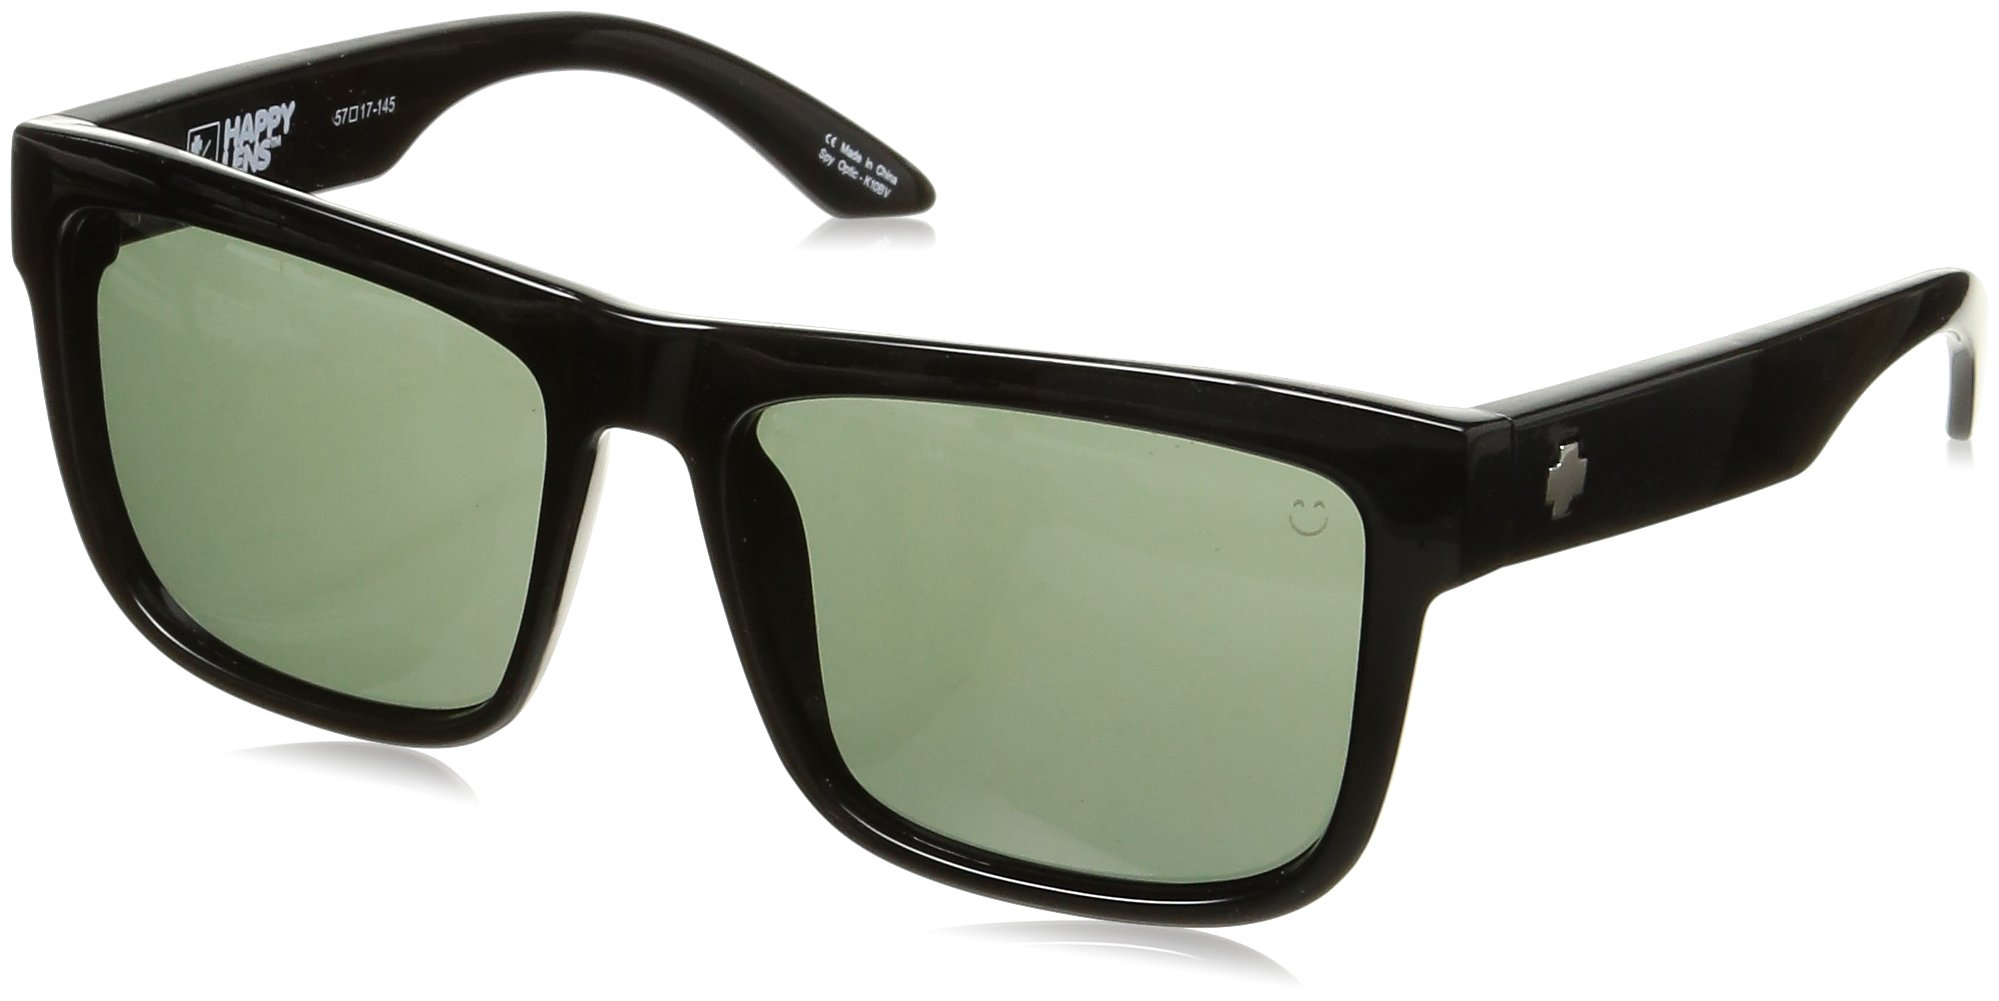 Spy Optic Discord Flat Sunglasses, Black/Happy Gray/Green, 57 mm